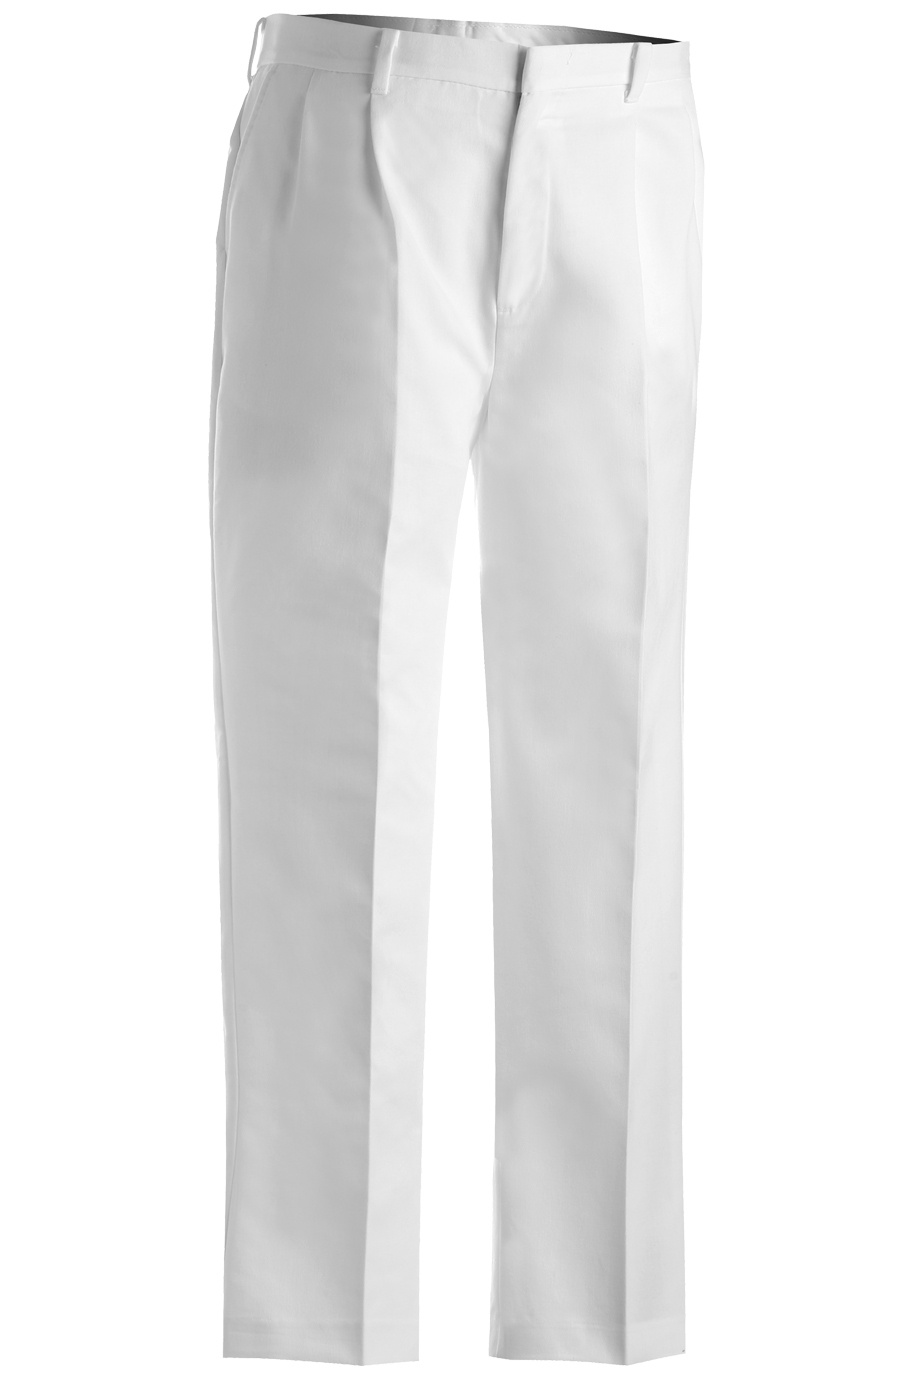 'Edwards 2610 Men's Business Casual Pleated Chino Pant'